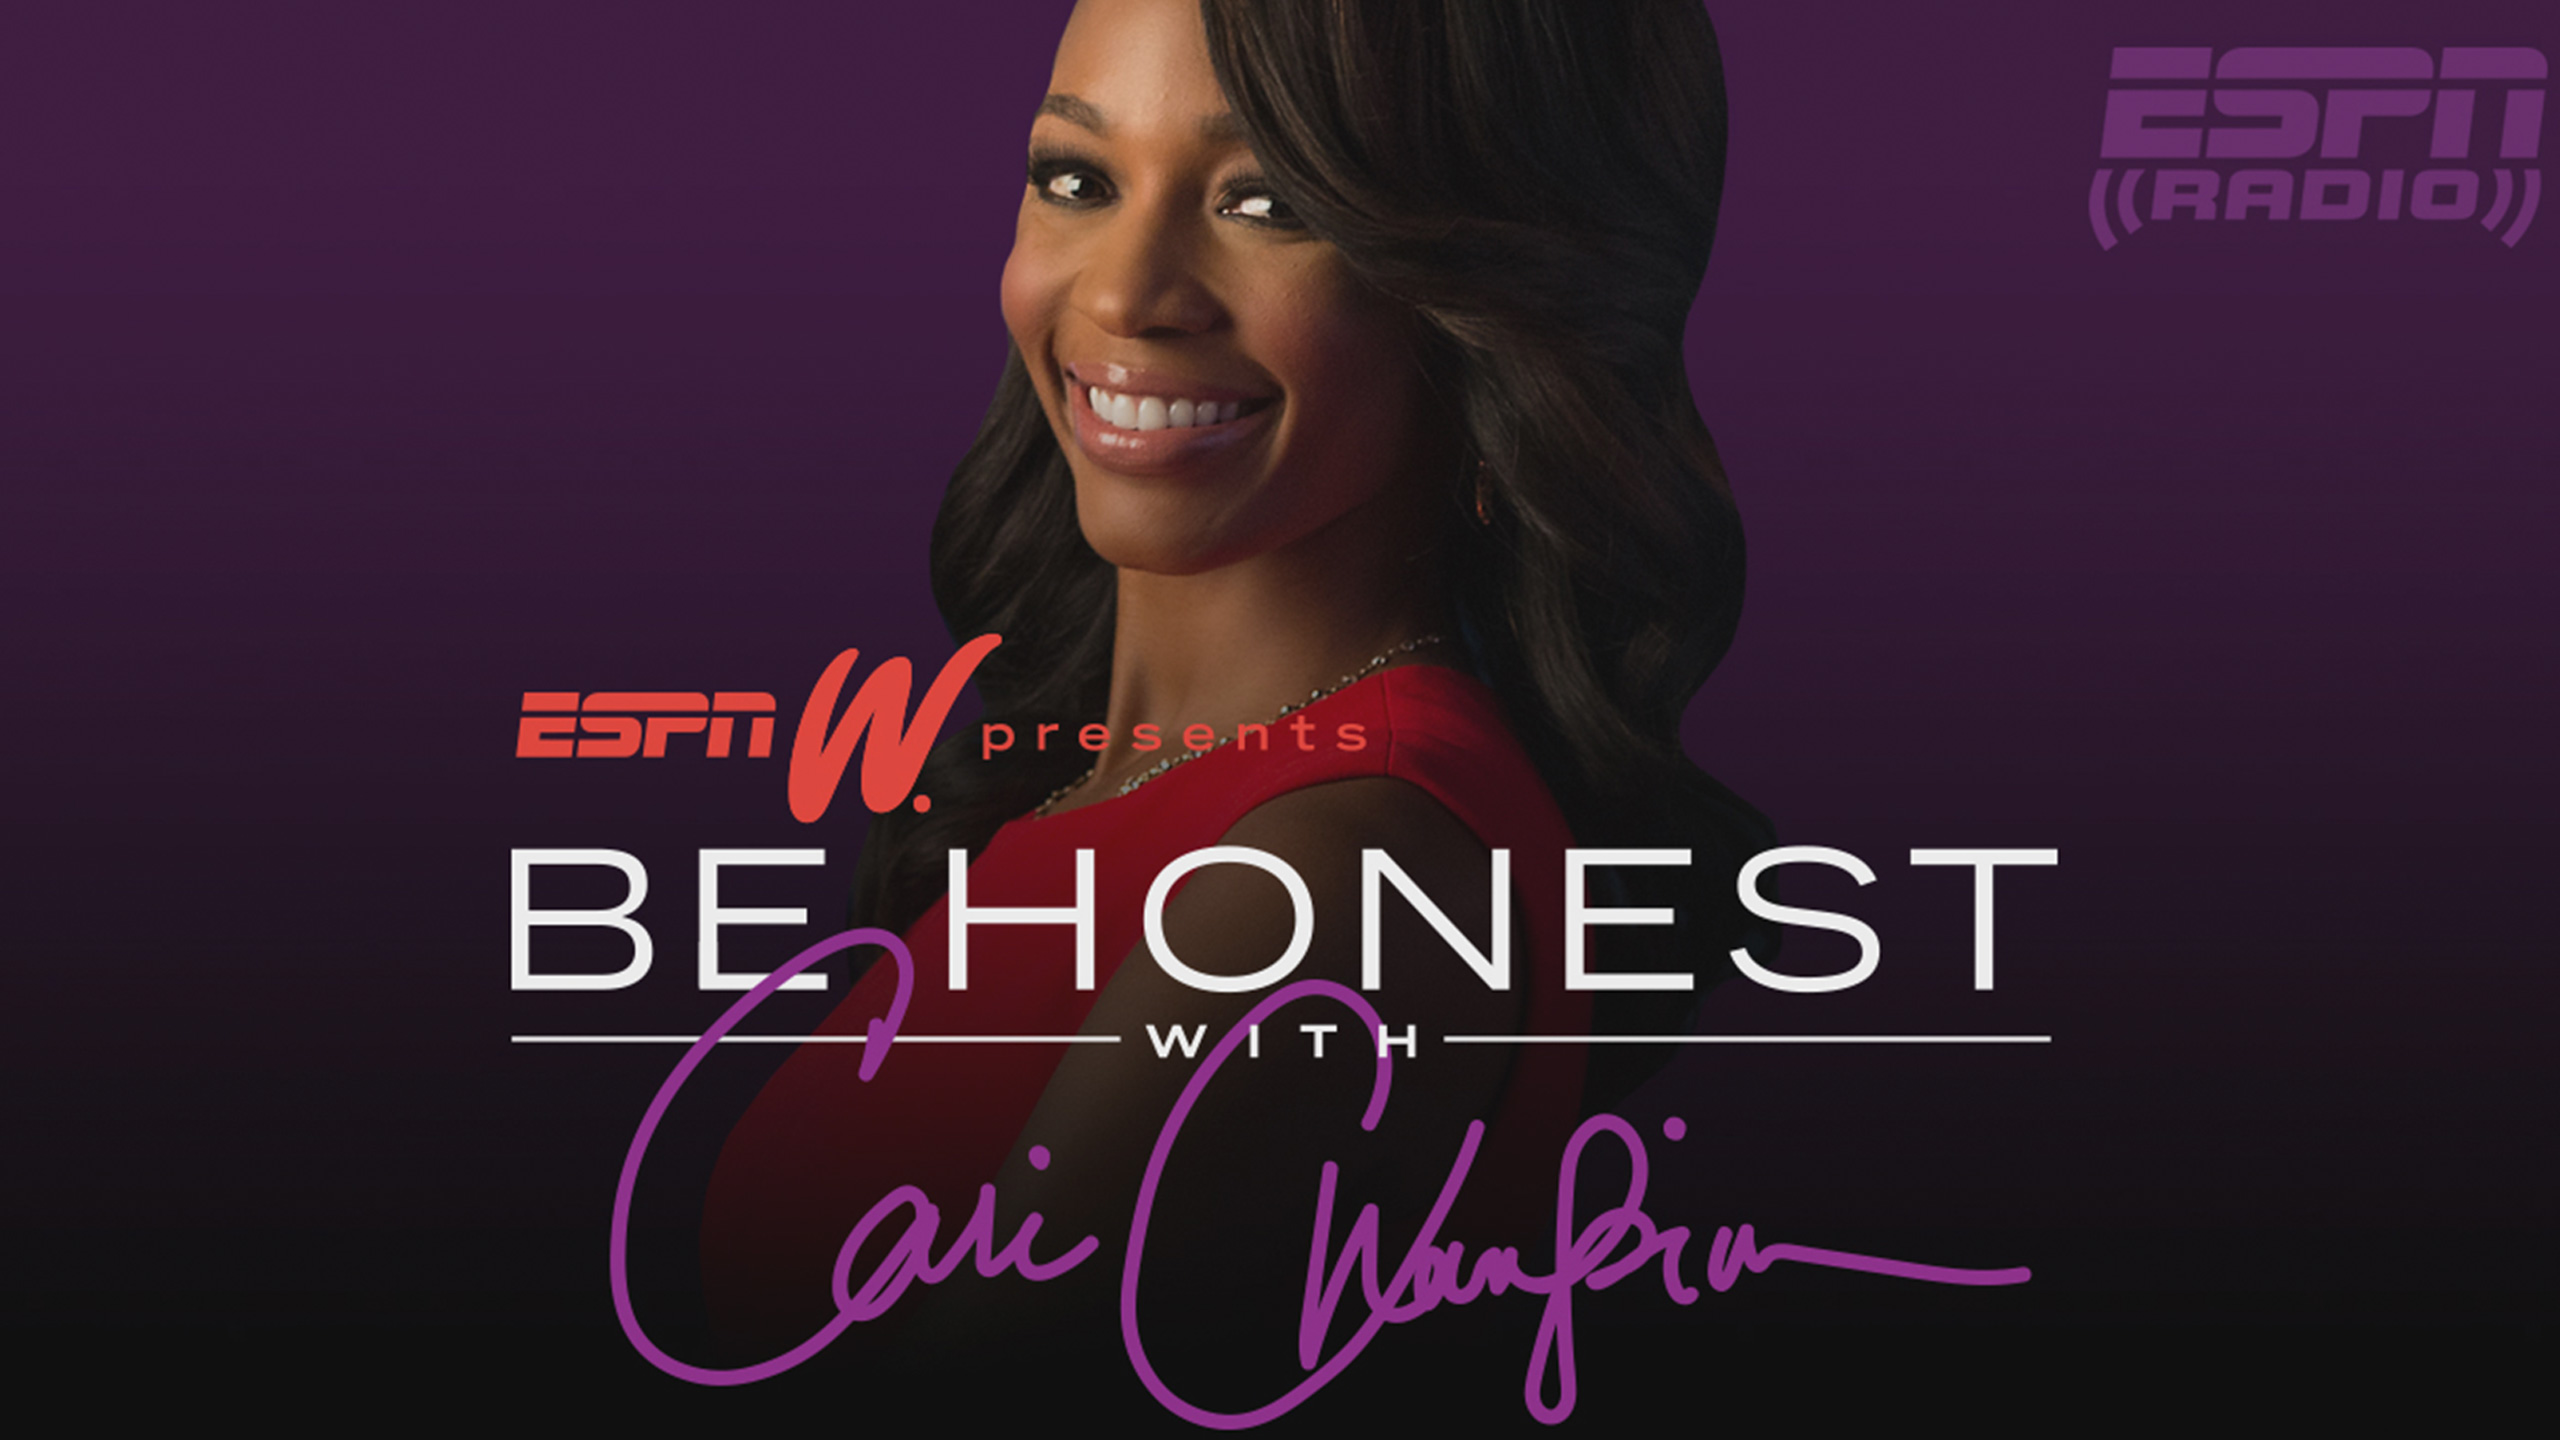 Thu, 3/21 - Be Honest with Cari Champion: Tone Bell